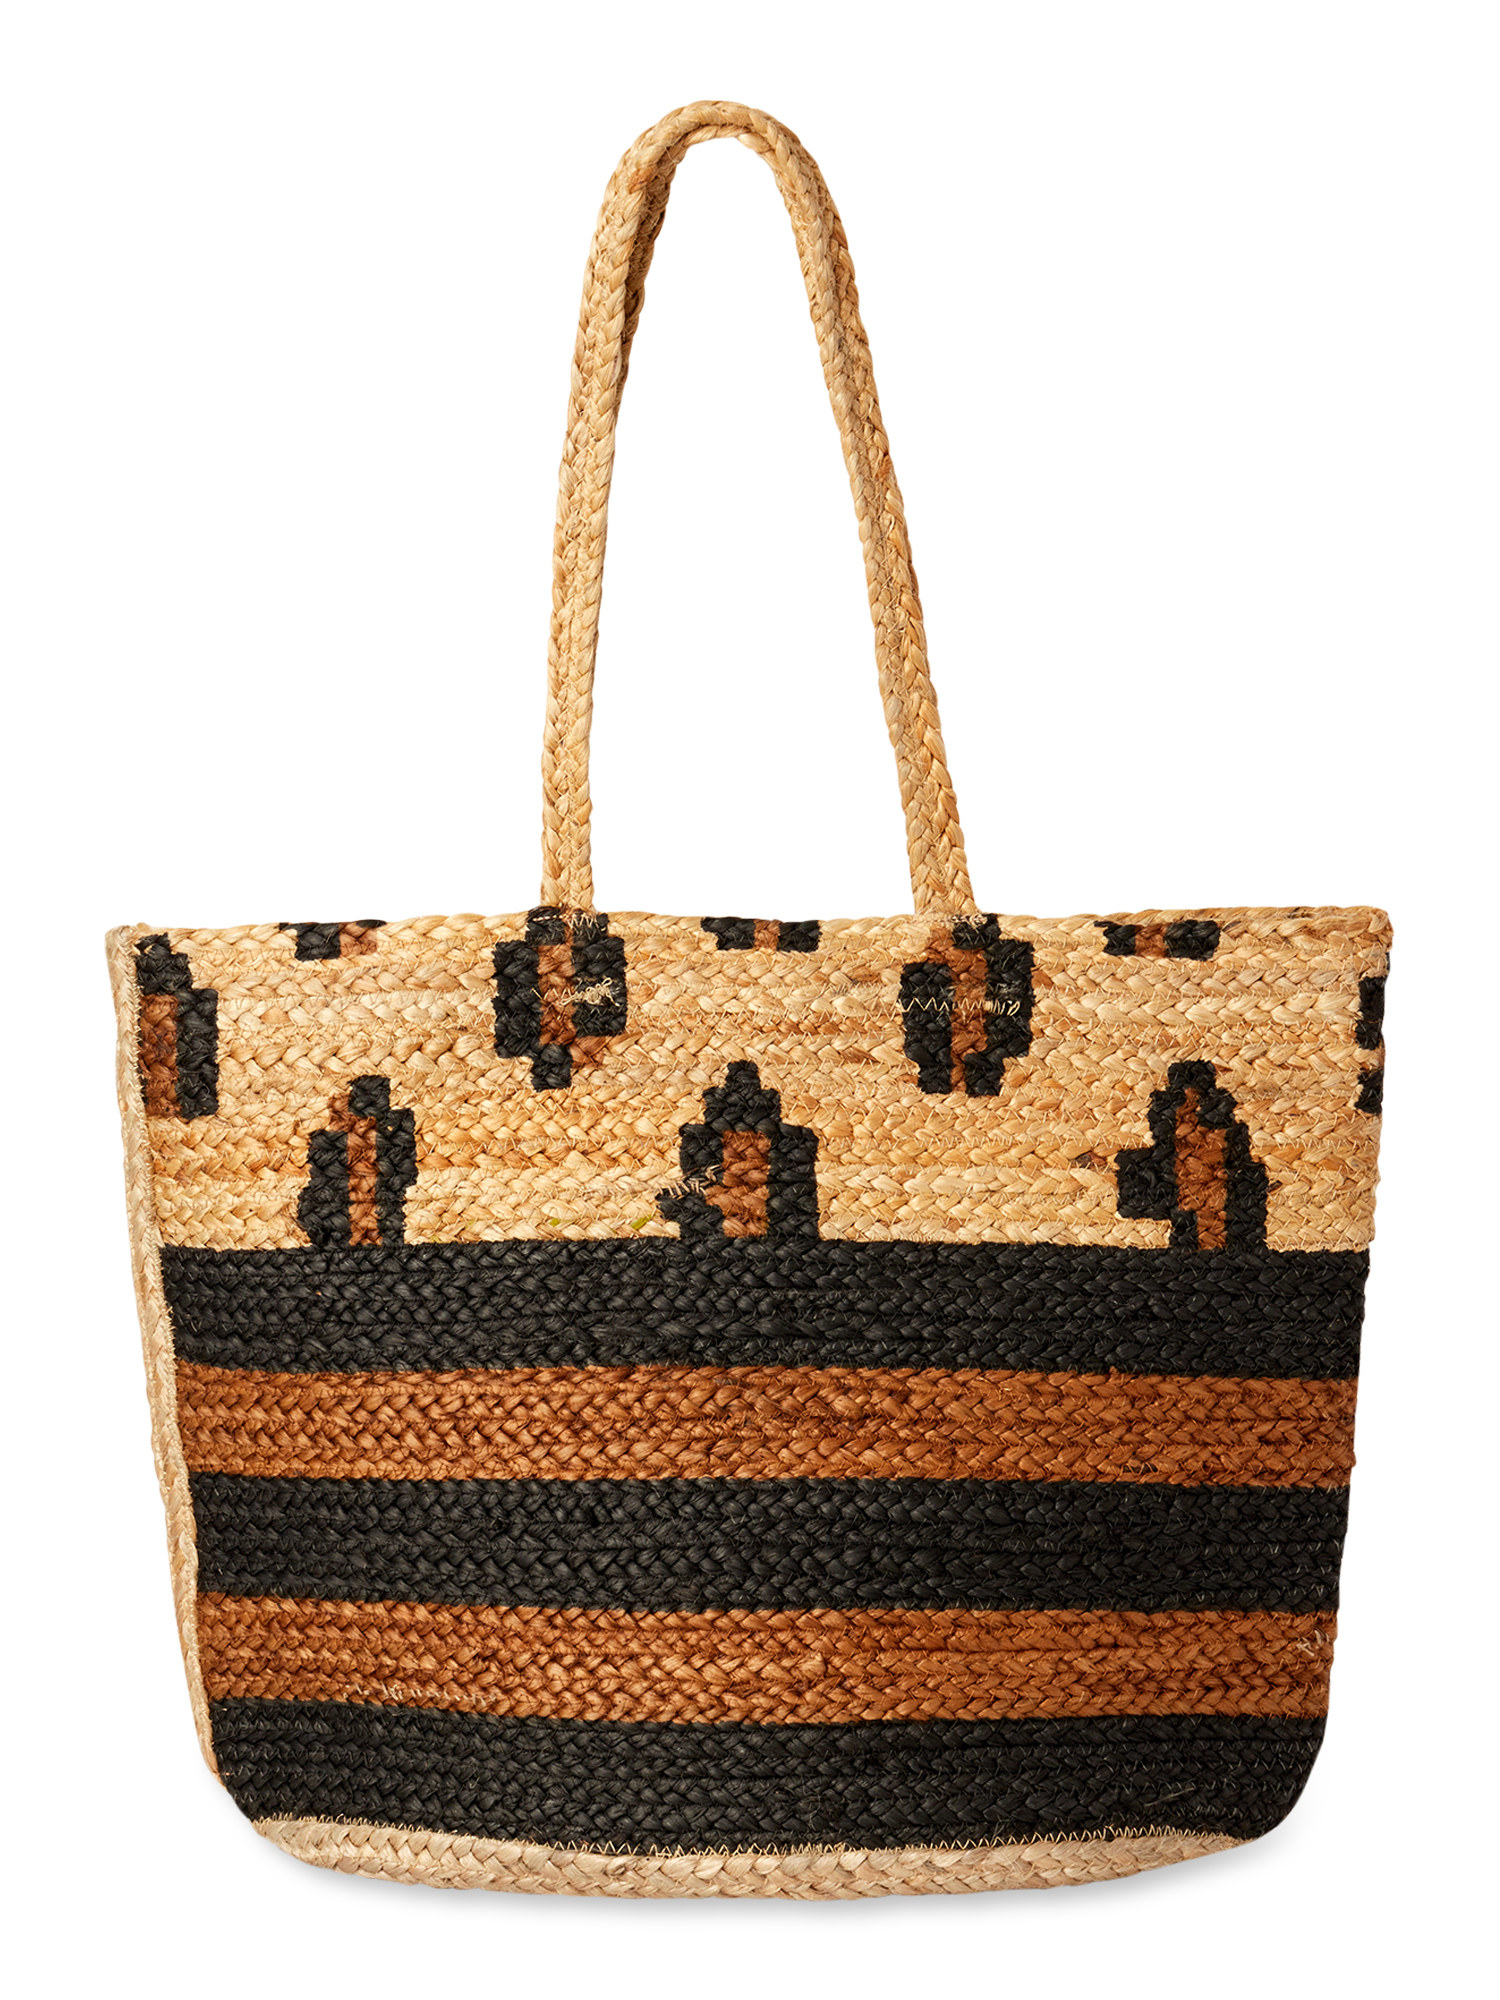 the leopard and striped tote